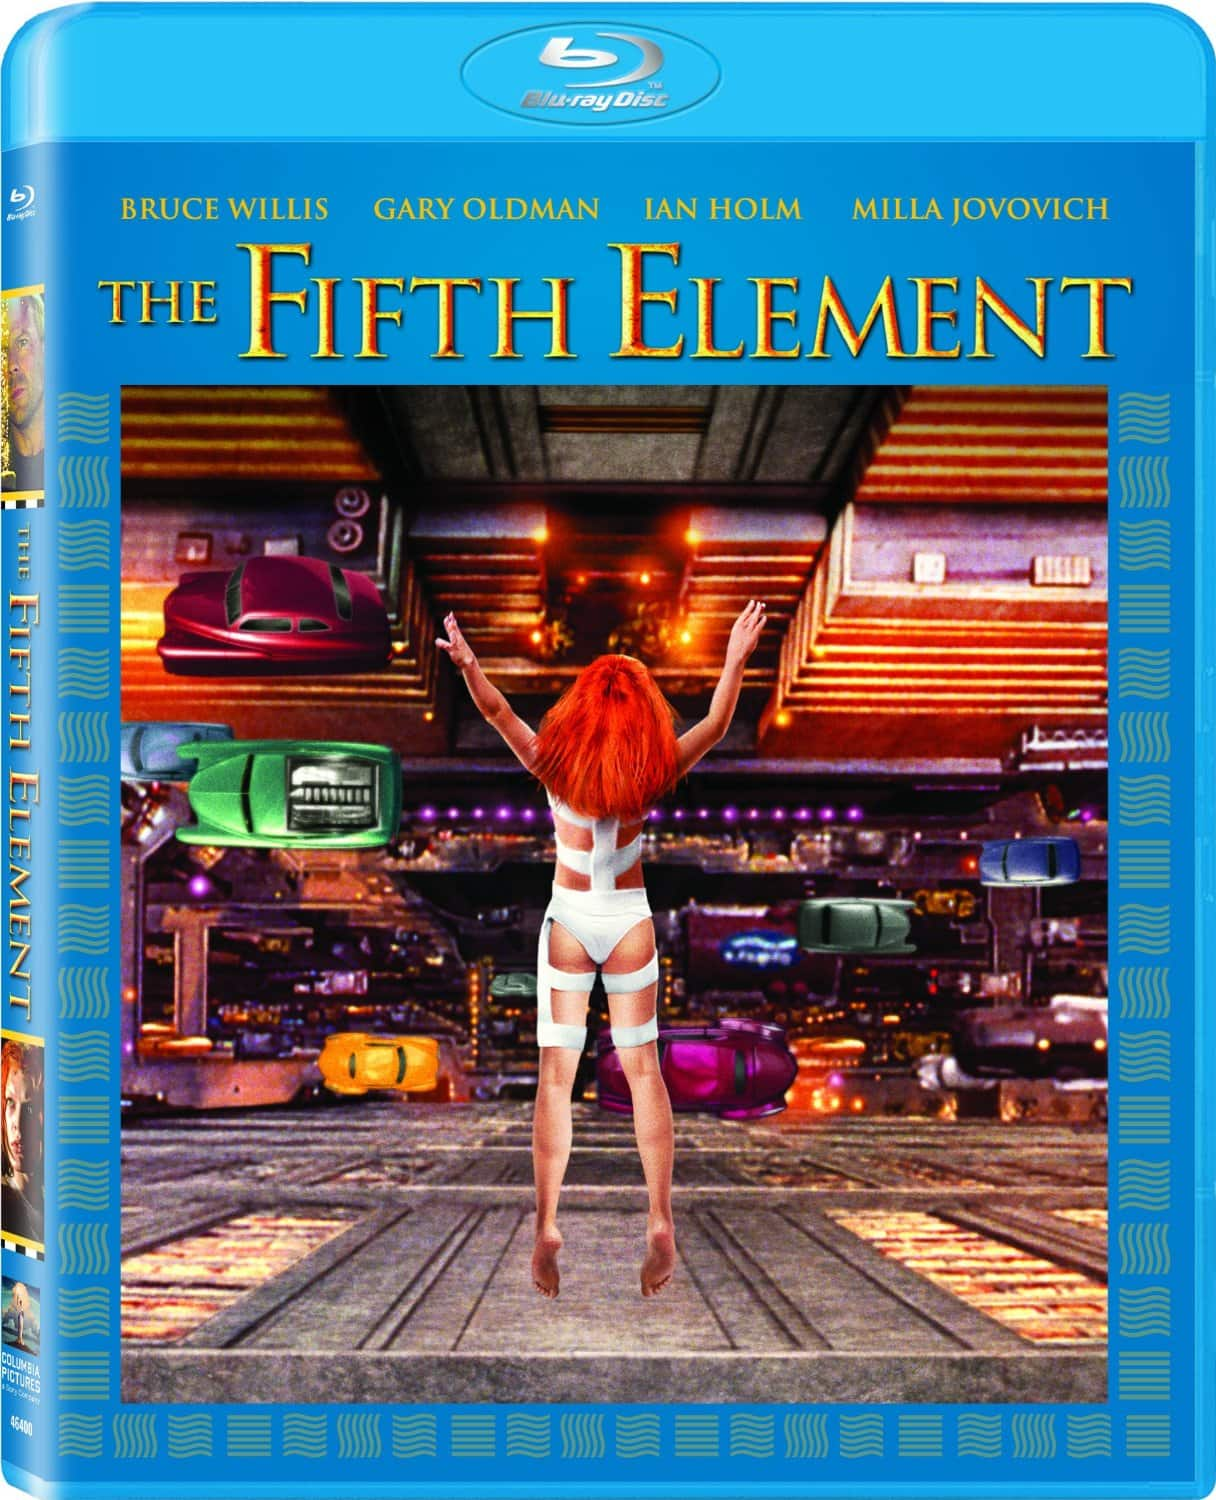 The Fifth Element: Remastered in 4K (Blu-ray)  $9